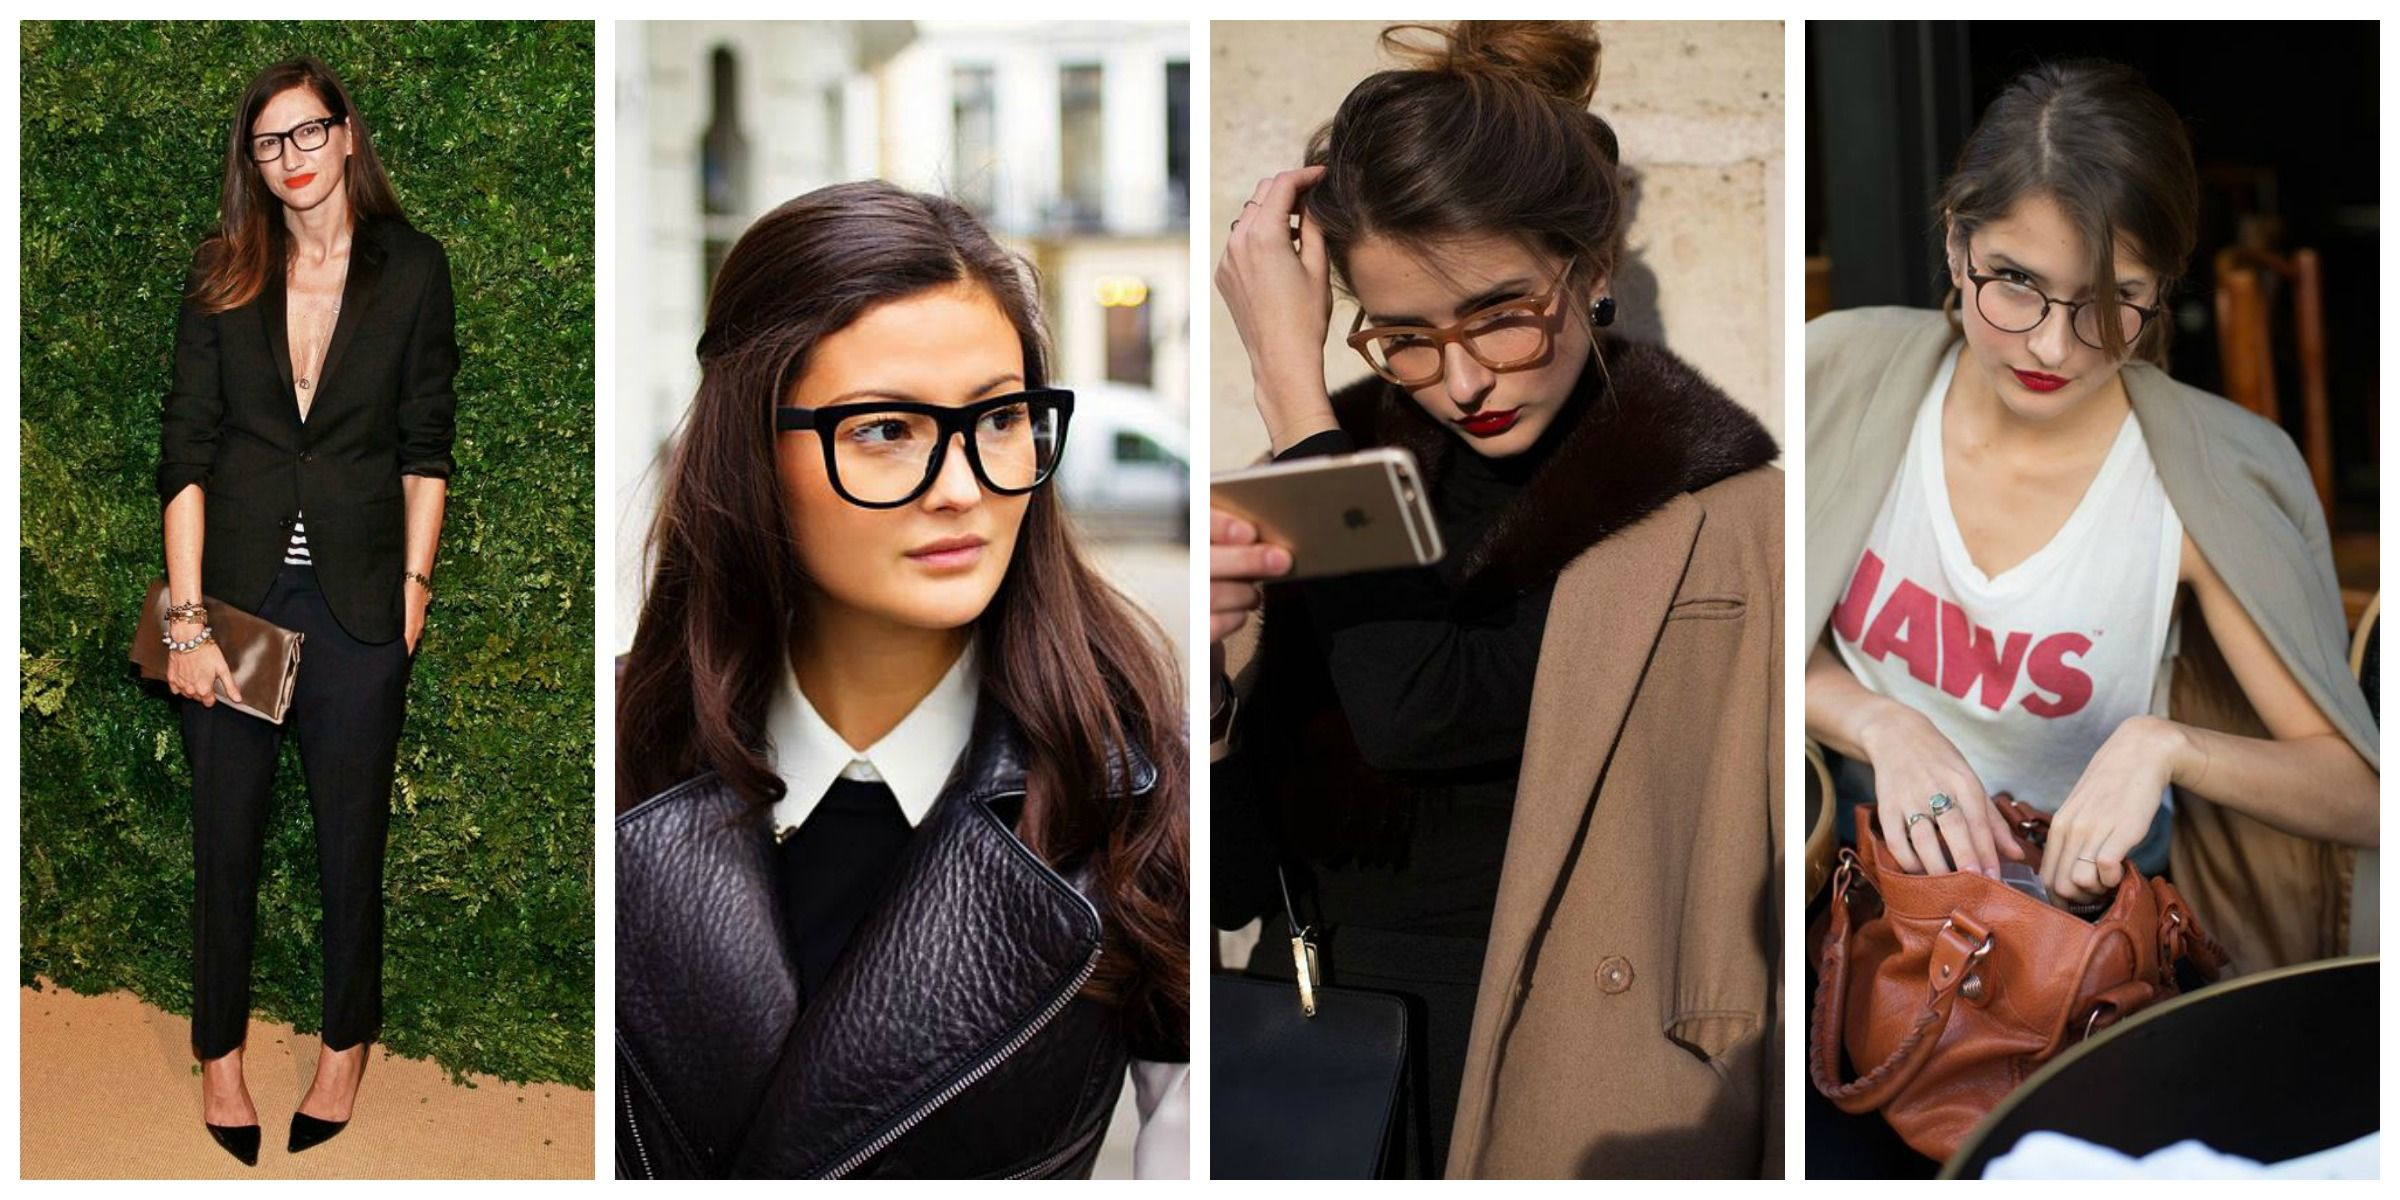 a606ba39fd1d Prescription Eyeglass Trends 2018 Uk - Bitterroot Public Library